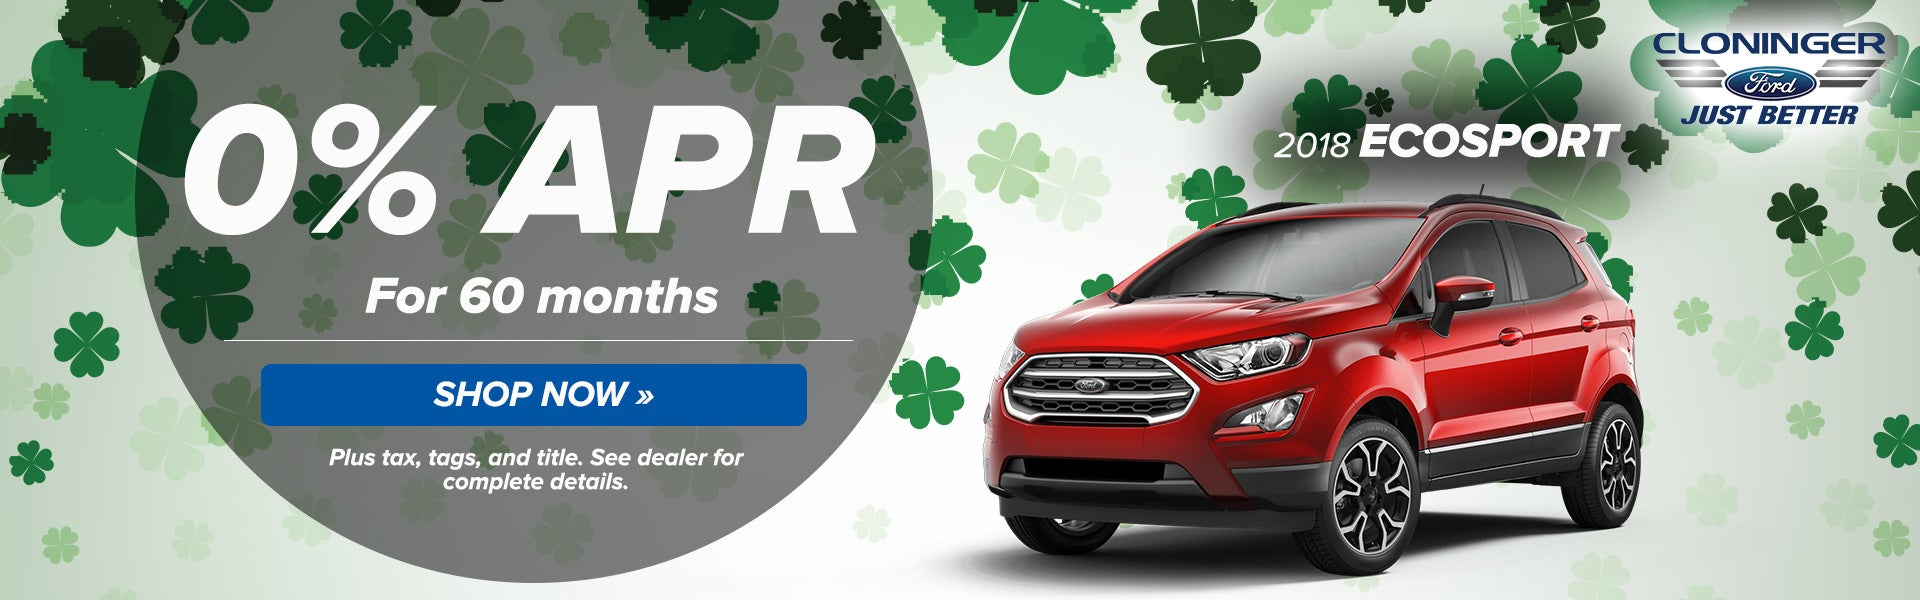 2018 Ecosport Cloninger Ford Of Hickory Specials Hickory Nc Page 3